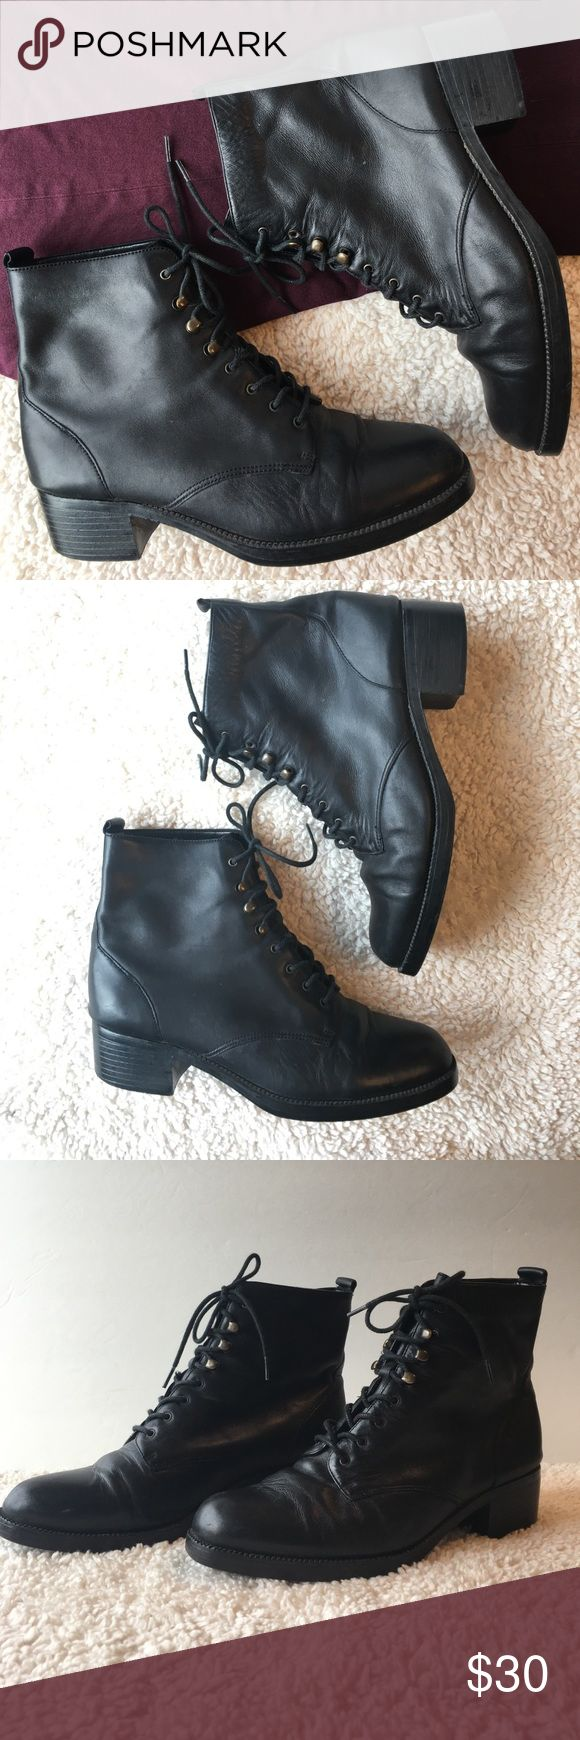 Mootsies Tootsies Lace Ankle Boots Mootsies Tootsies Booticon Black Leather Lace Ankle Boots Size 7.5 Shoes Ankle Boots & Booties